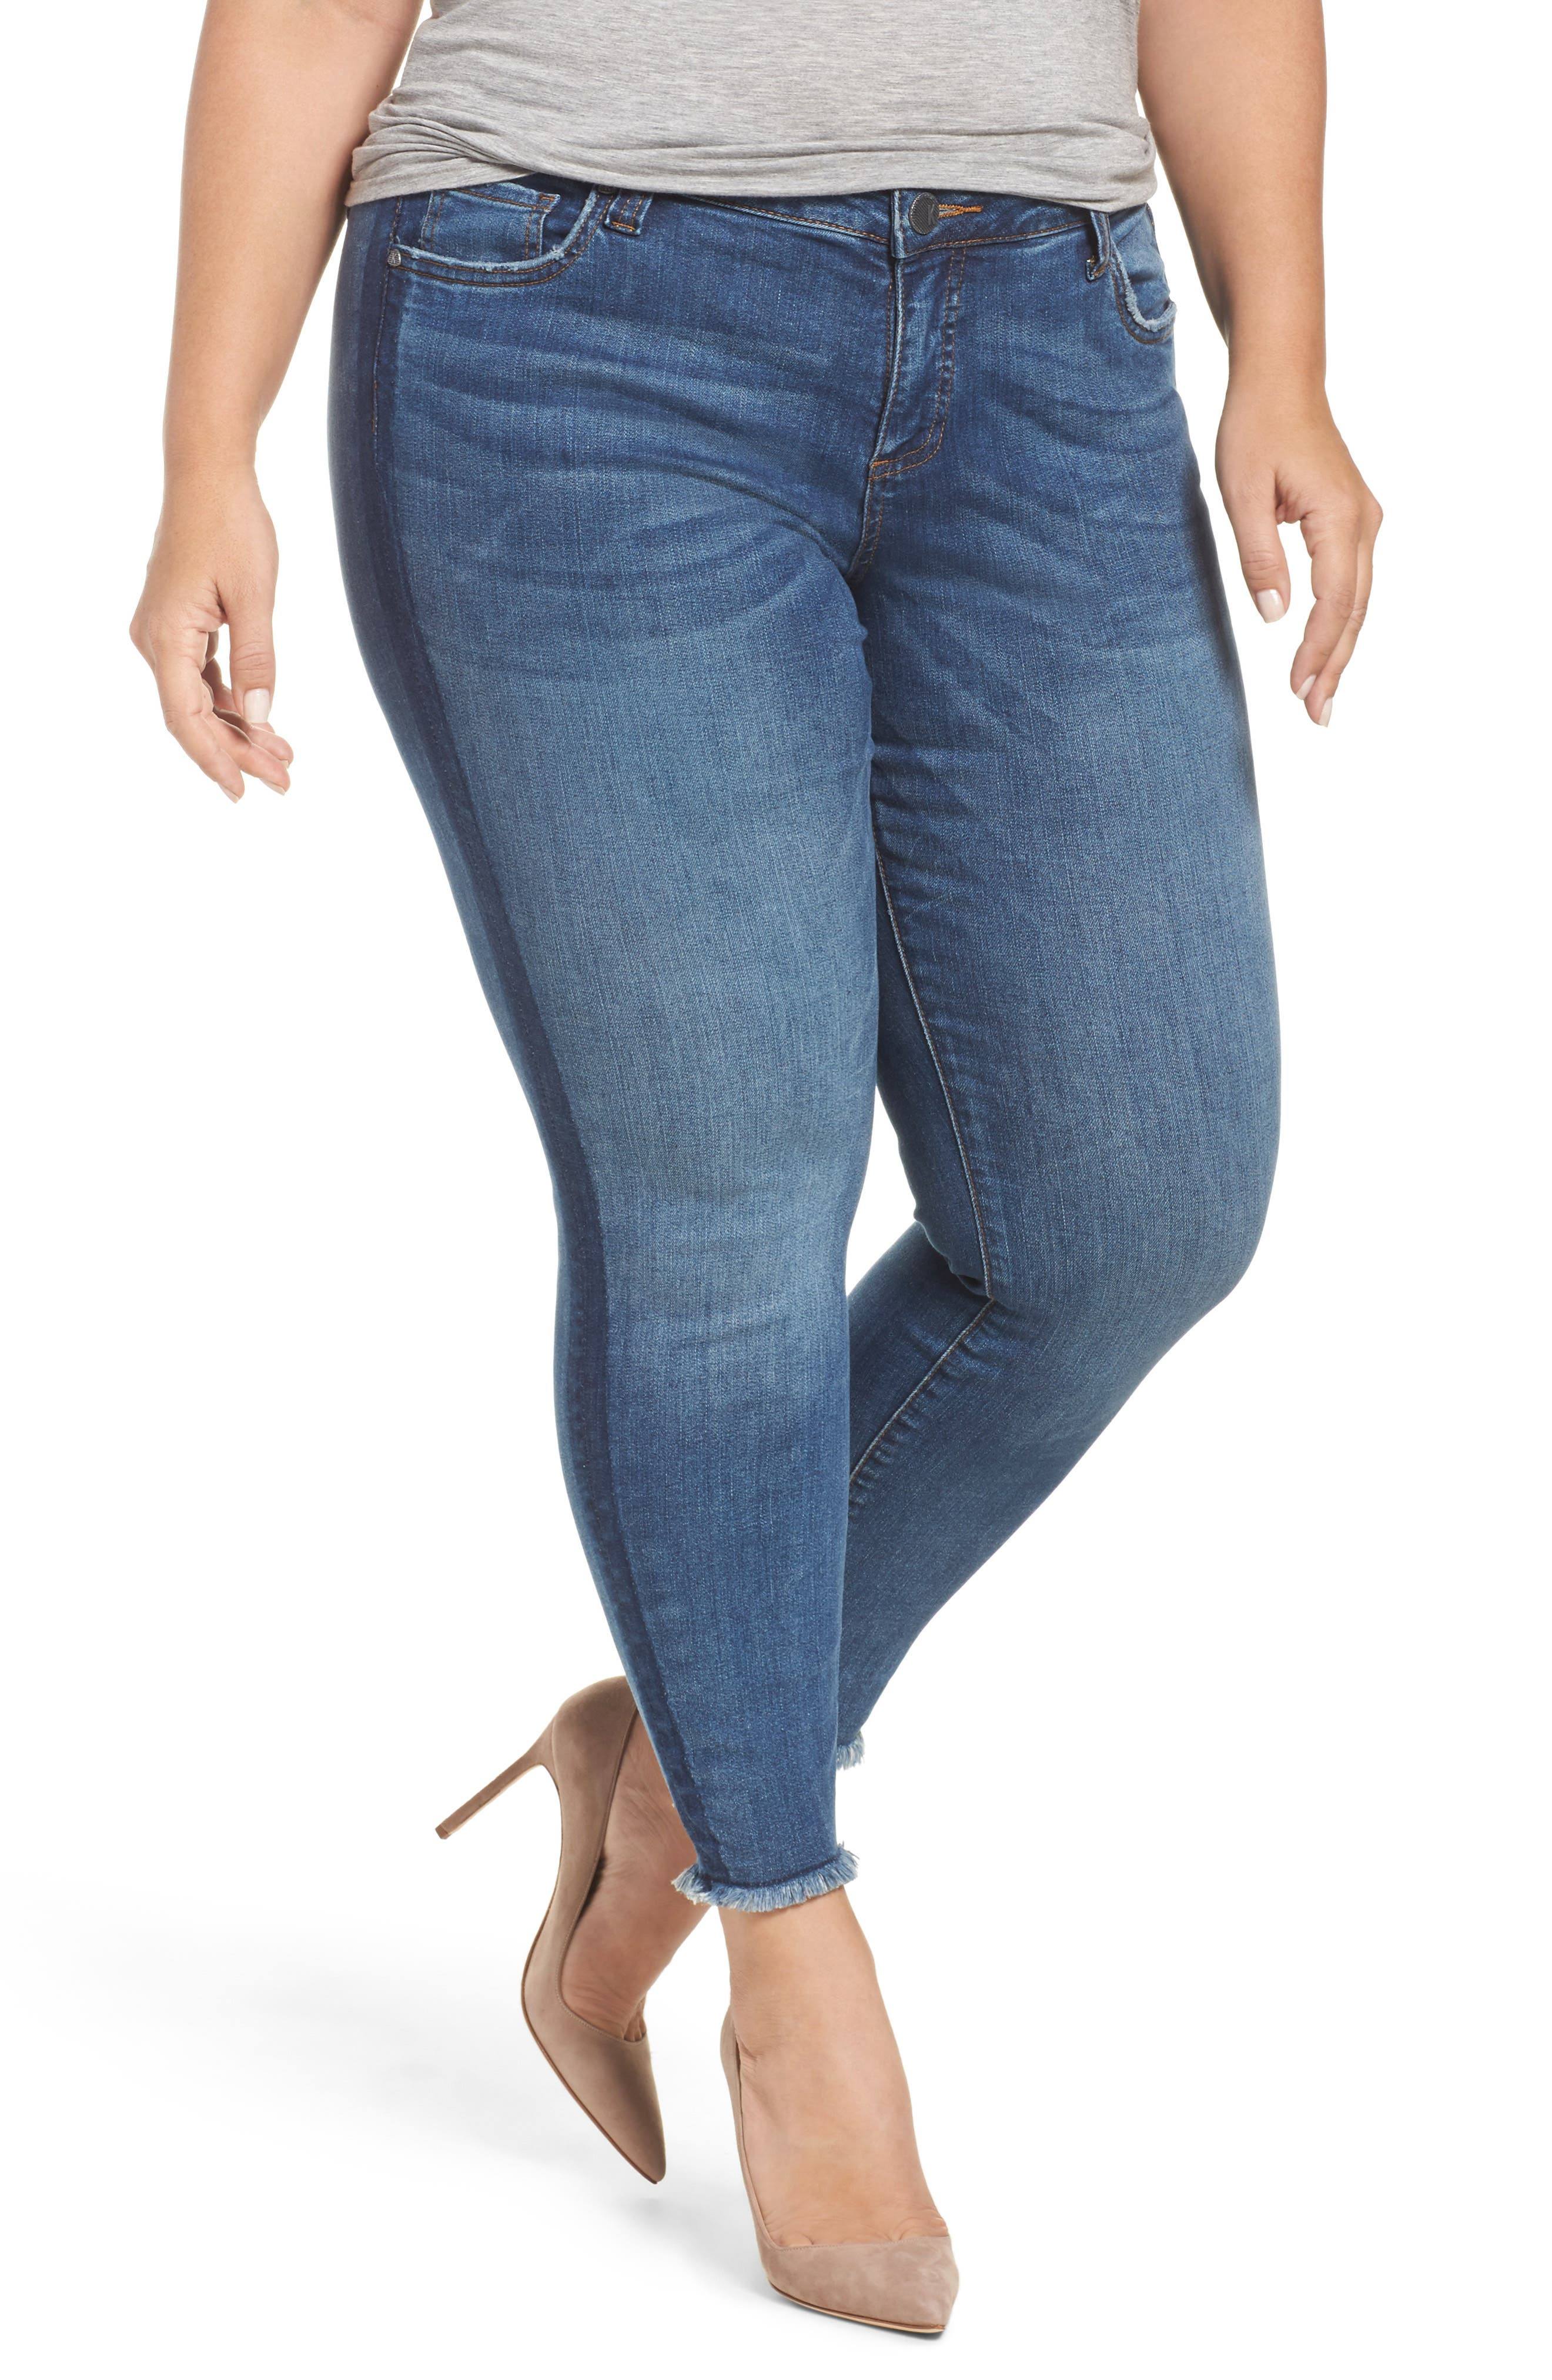 Main Image - KUT from the Kloth Connie Frayed Skinny Ankle Jeans (Prolific) (Plus Size)